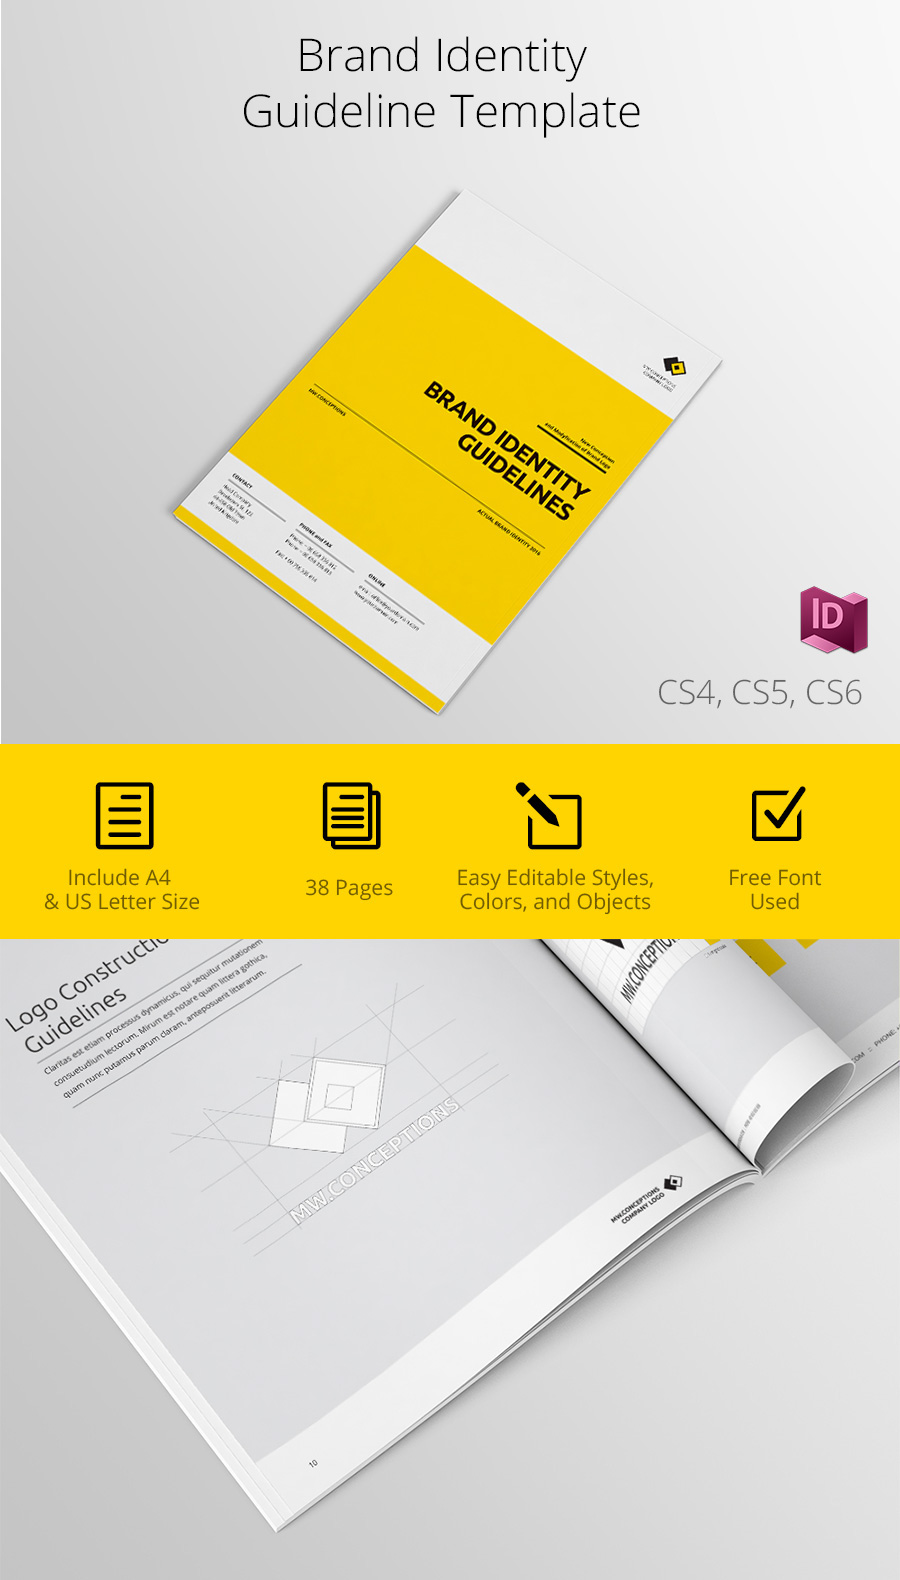 Brand identity guidelines template on behance maxwellsz